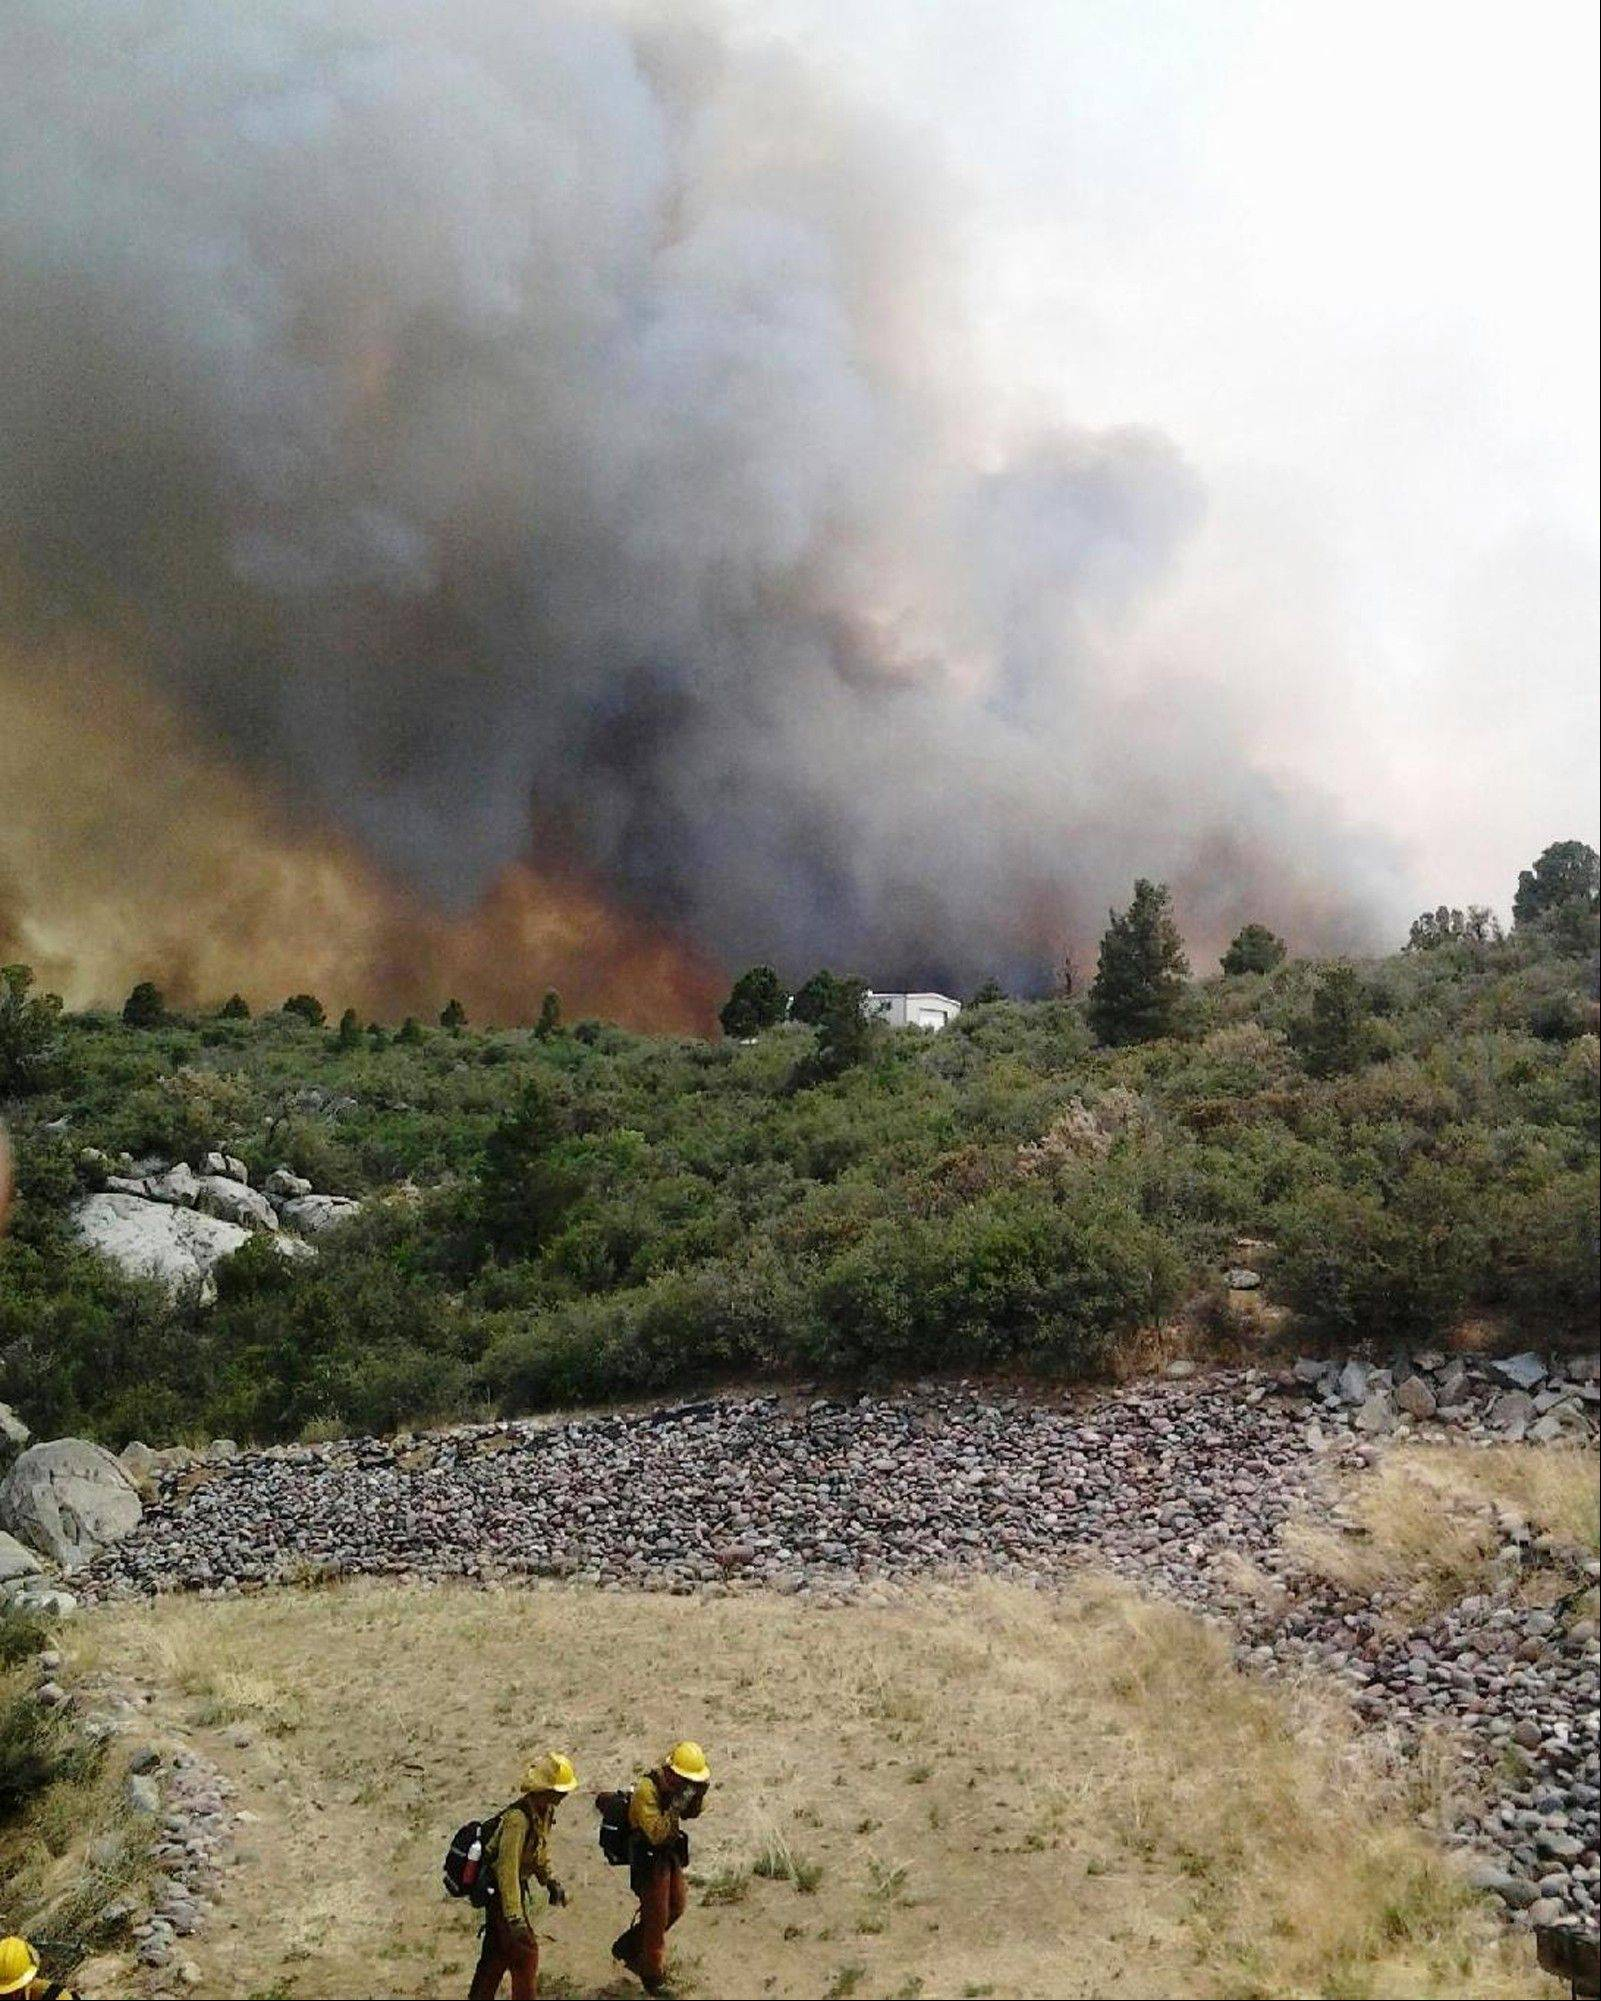 Firefighters work near a wildfire burning along a ridge in Yarnell, Ariz., in this photo provided by the U.S. Forest Service, Monday, July 1, 2013. The lightning-sparked fire, which started last Friday, spread to at least 2,000 acres amid triple-digit temperatures, overtook an elite group of firefighters, killing 19 members as they tried to protect themselves from the flames under fire-resistant shields.